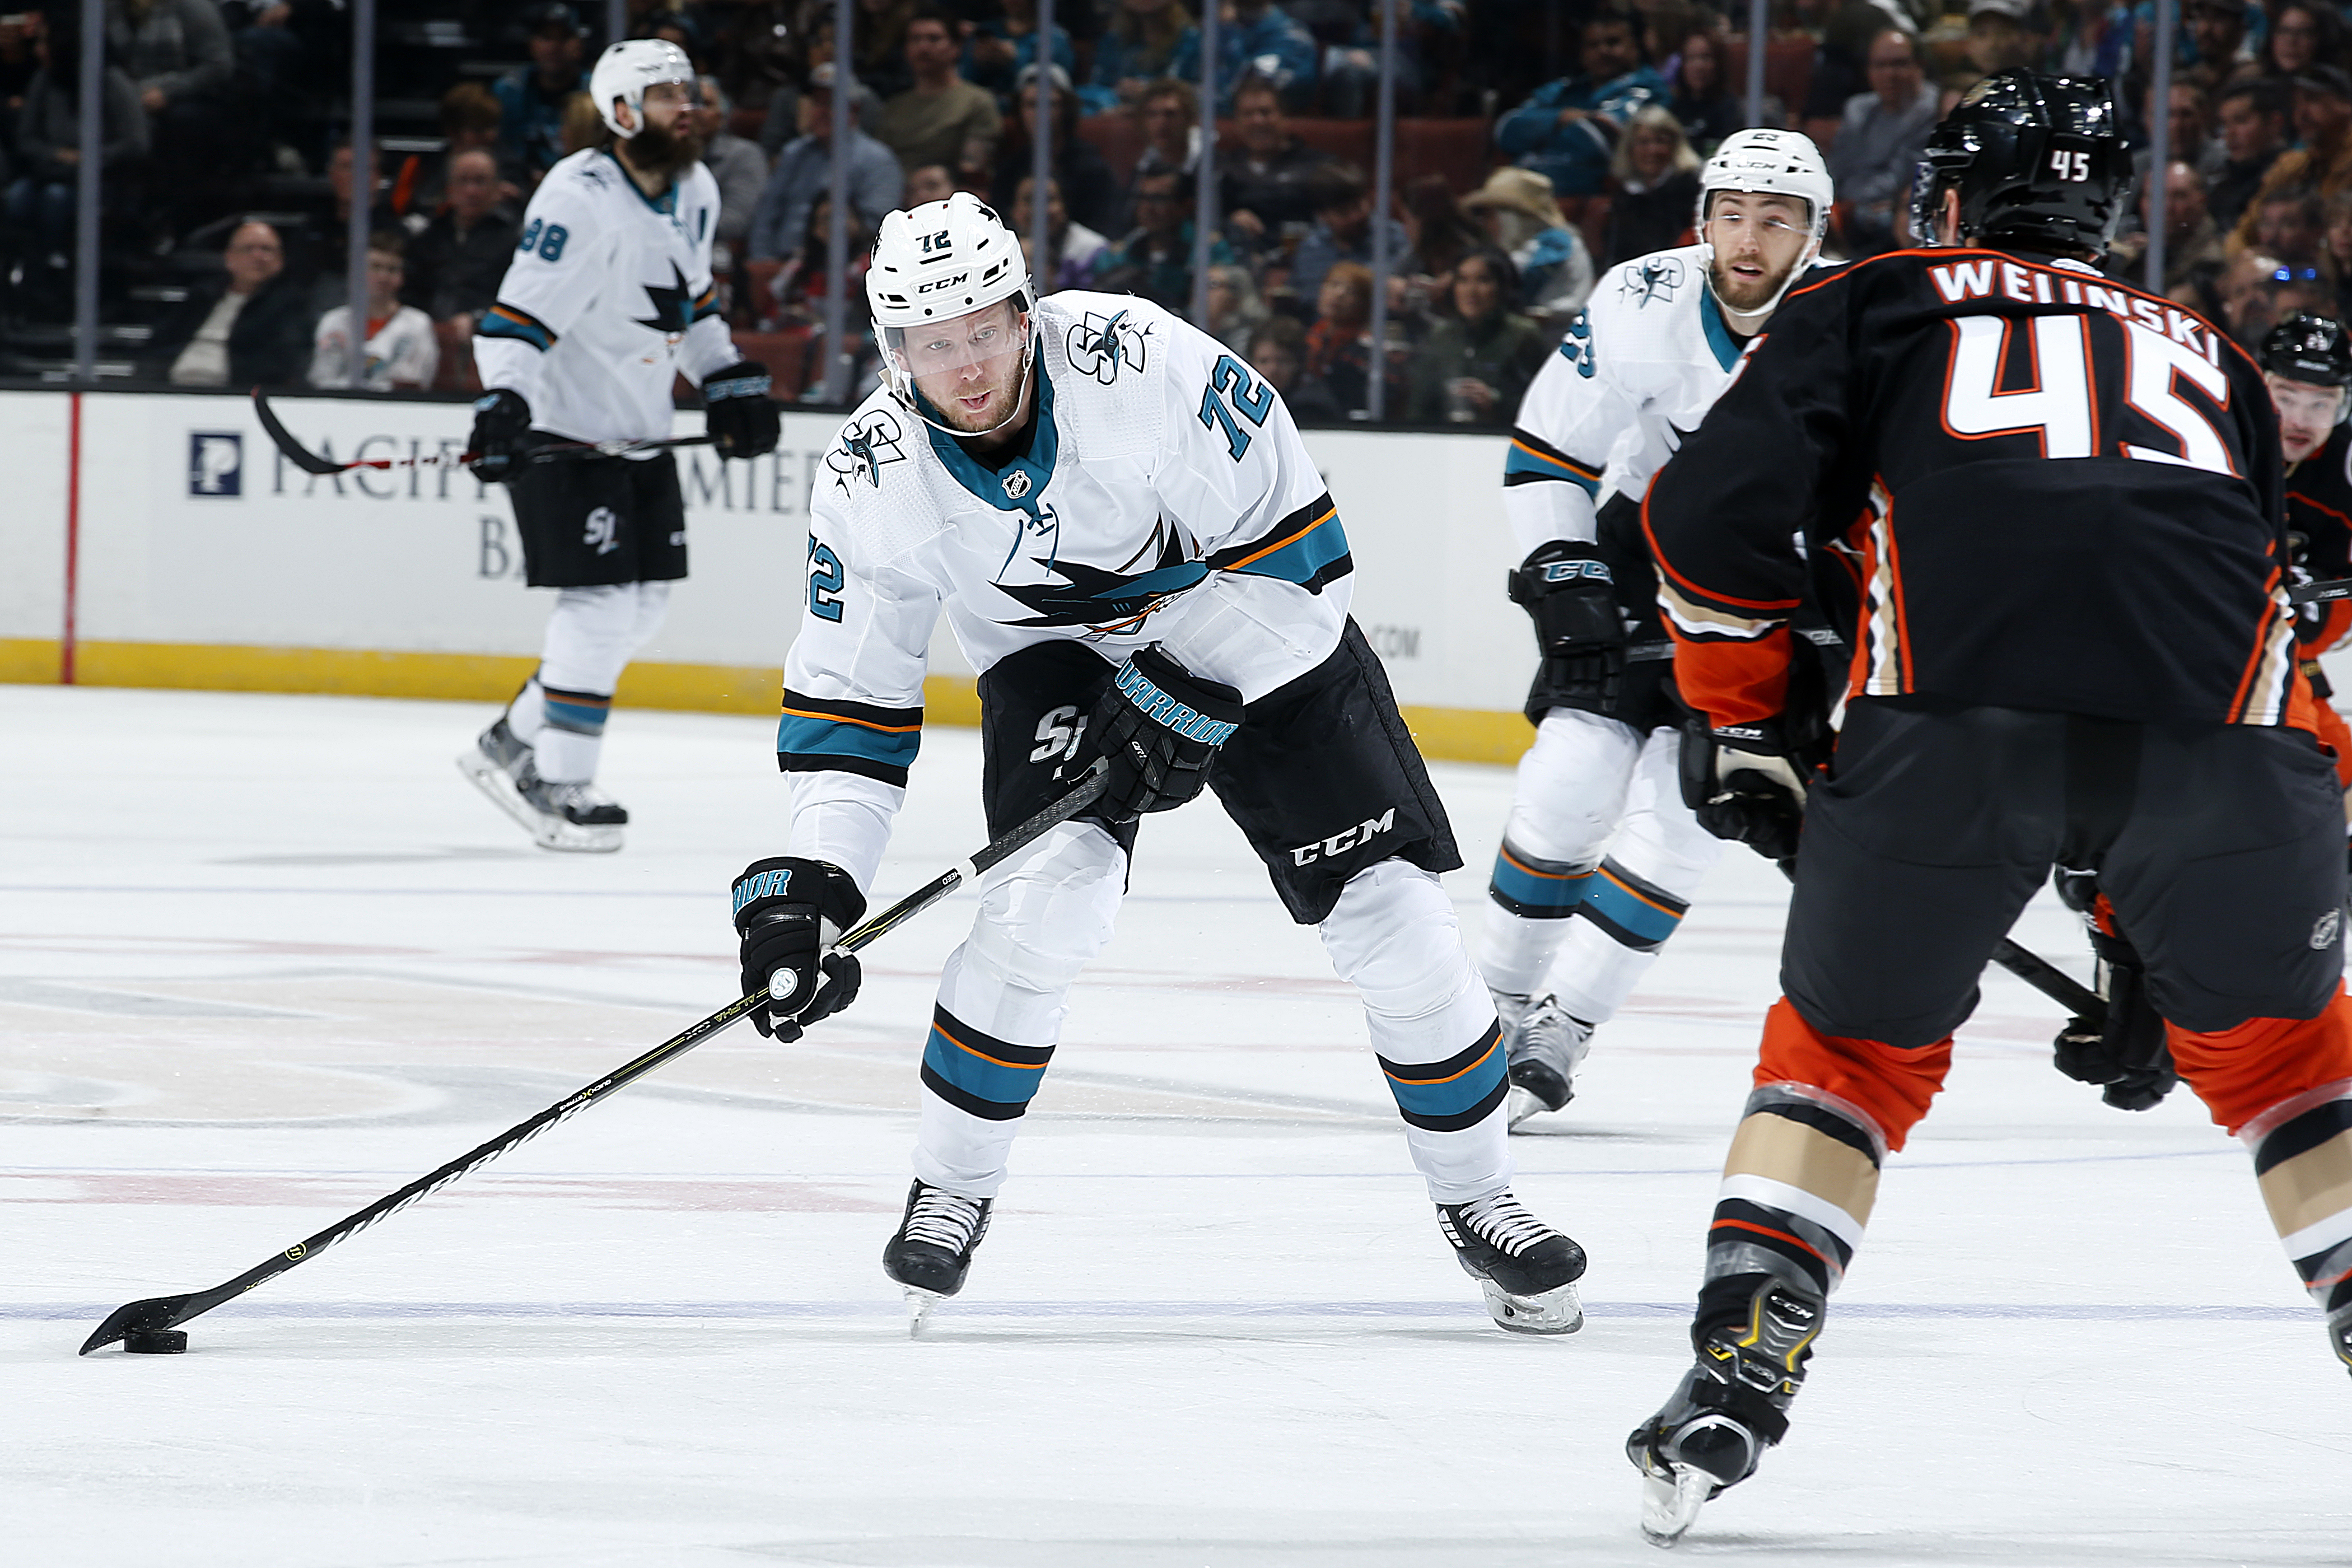 Tim Heed of the San Jose Sharks winds up for a shot with pressure from Andy Welinski of the Anaheim Ducks during the game on March 22, 2019 at Honda Center in Anaheim, California.